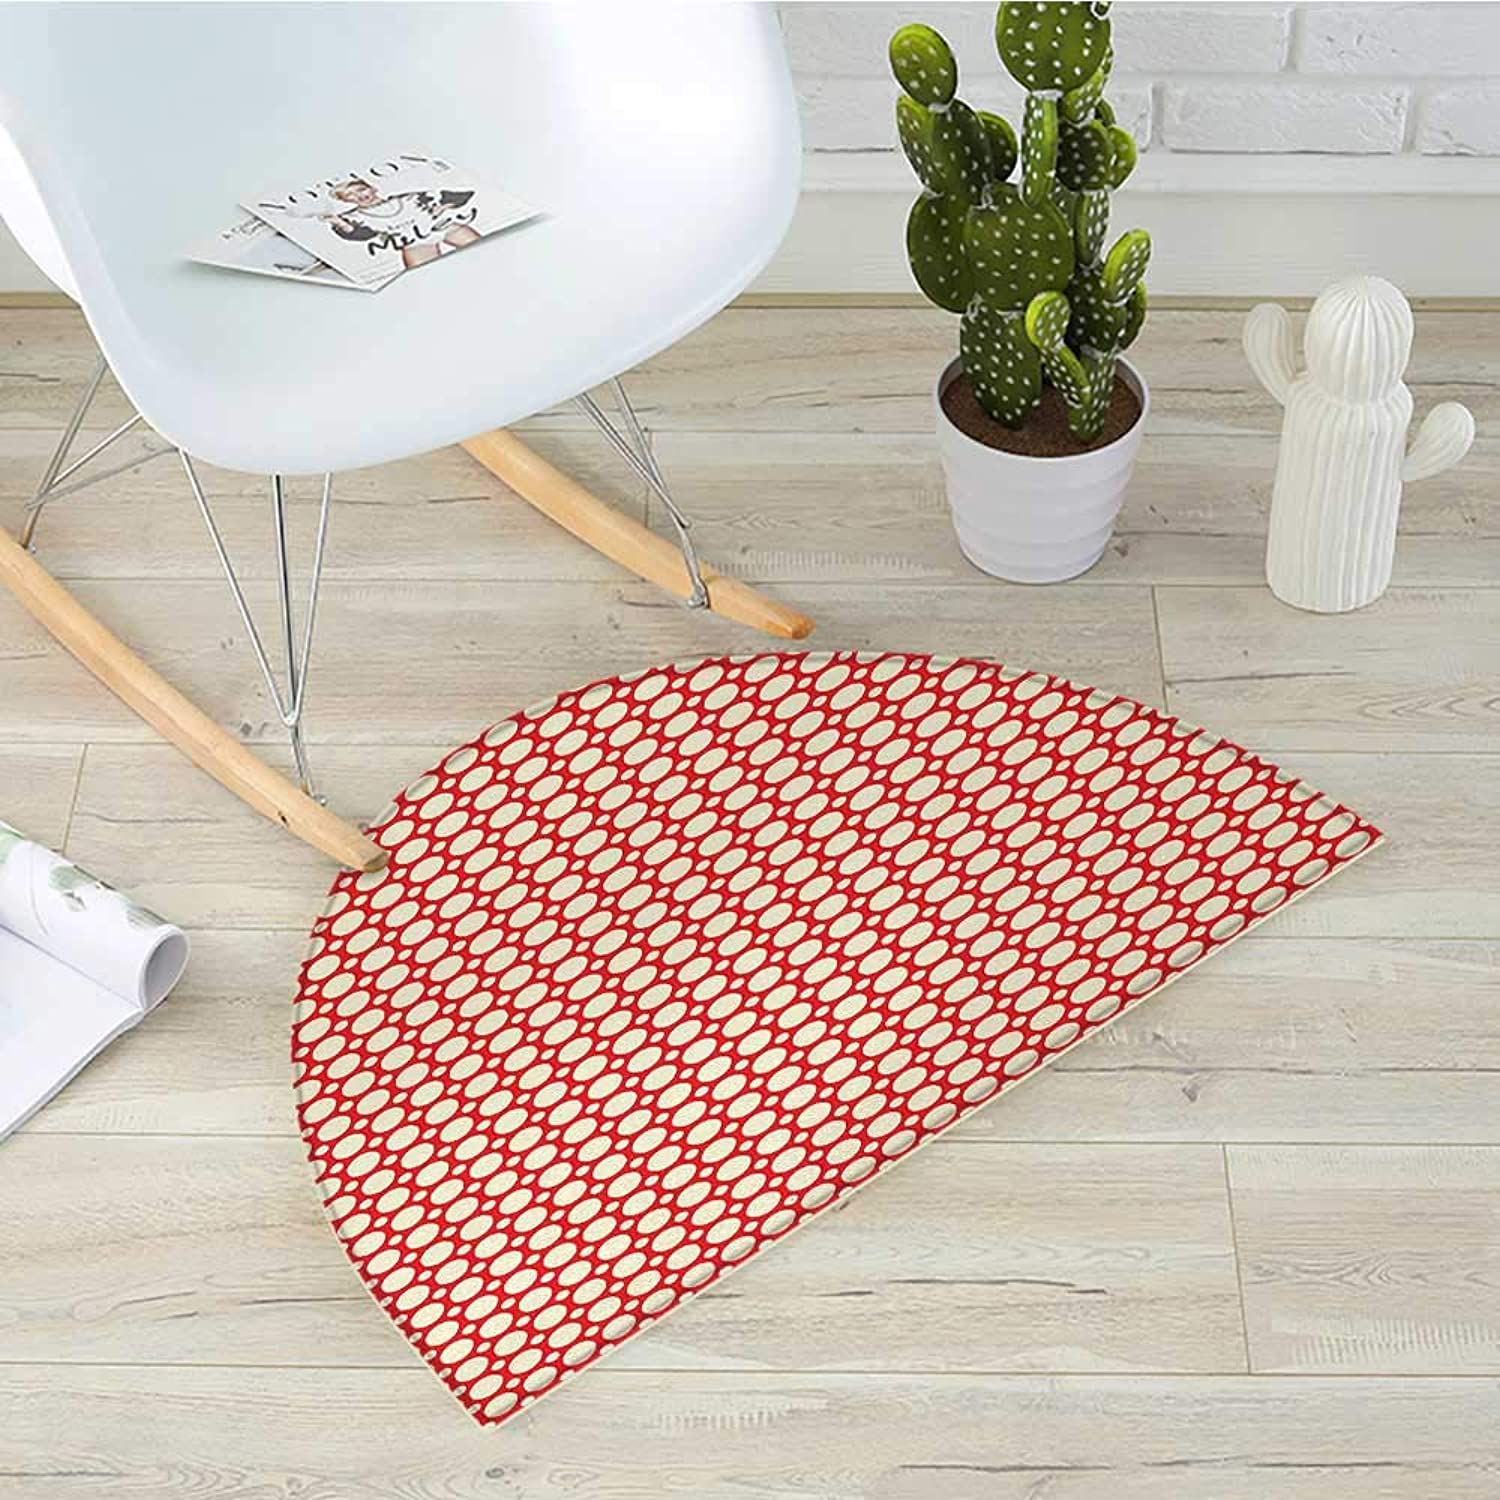 Retro Semicircular CushionBig and Small Polka Dots Pattern Symmetrical Geometric Tile Design Vintage Style Entry Door Mat H 43.3  xD 64.9  Red and Cream